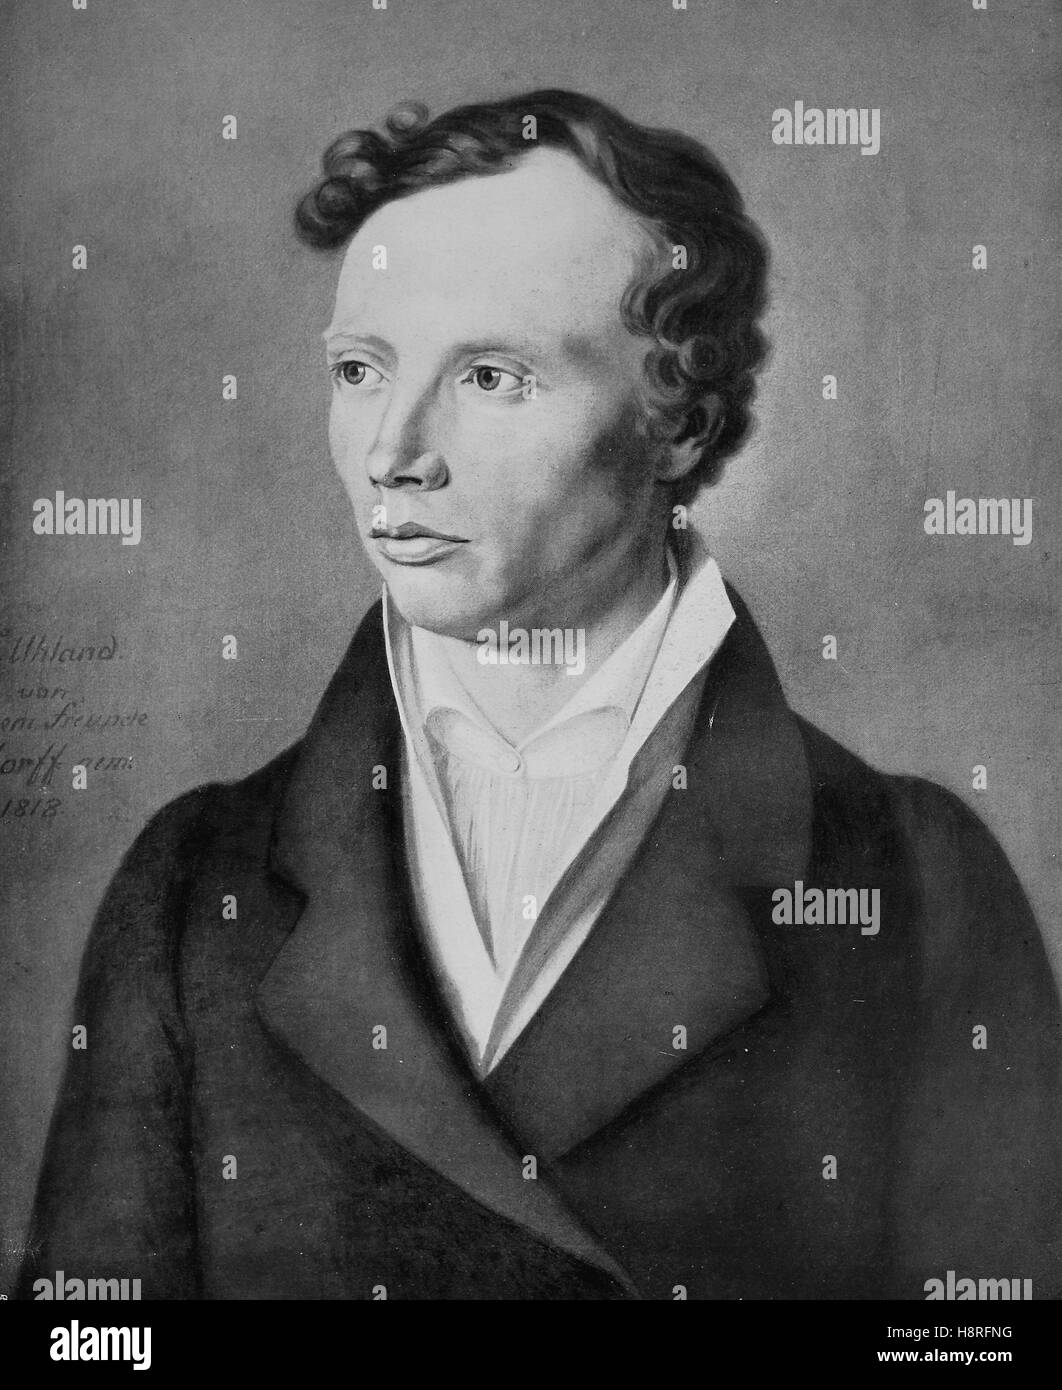 Johann Ludwig Uhland was a German poet, philologist and literary historian - Stock Image